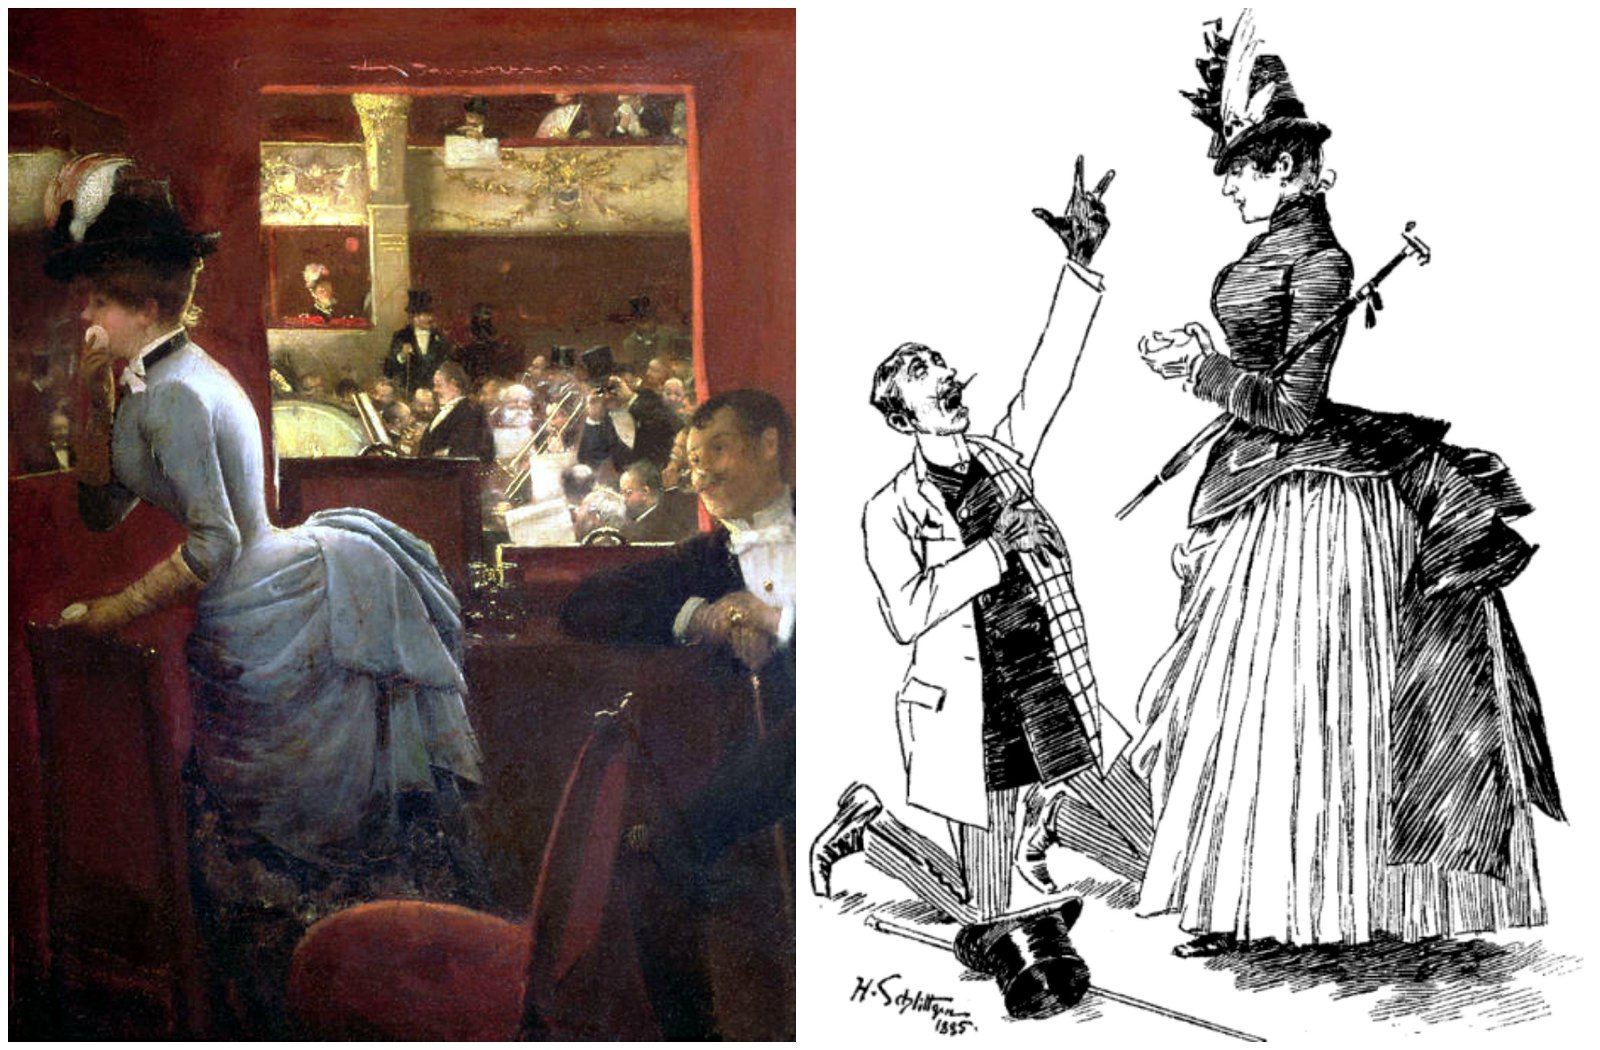 Left: The Box by the Stalls by Jean-Georges Béraud - 1883. Right: An 1885 proposal caricature